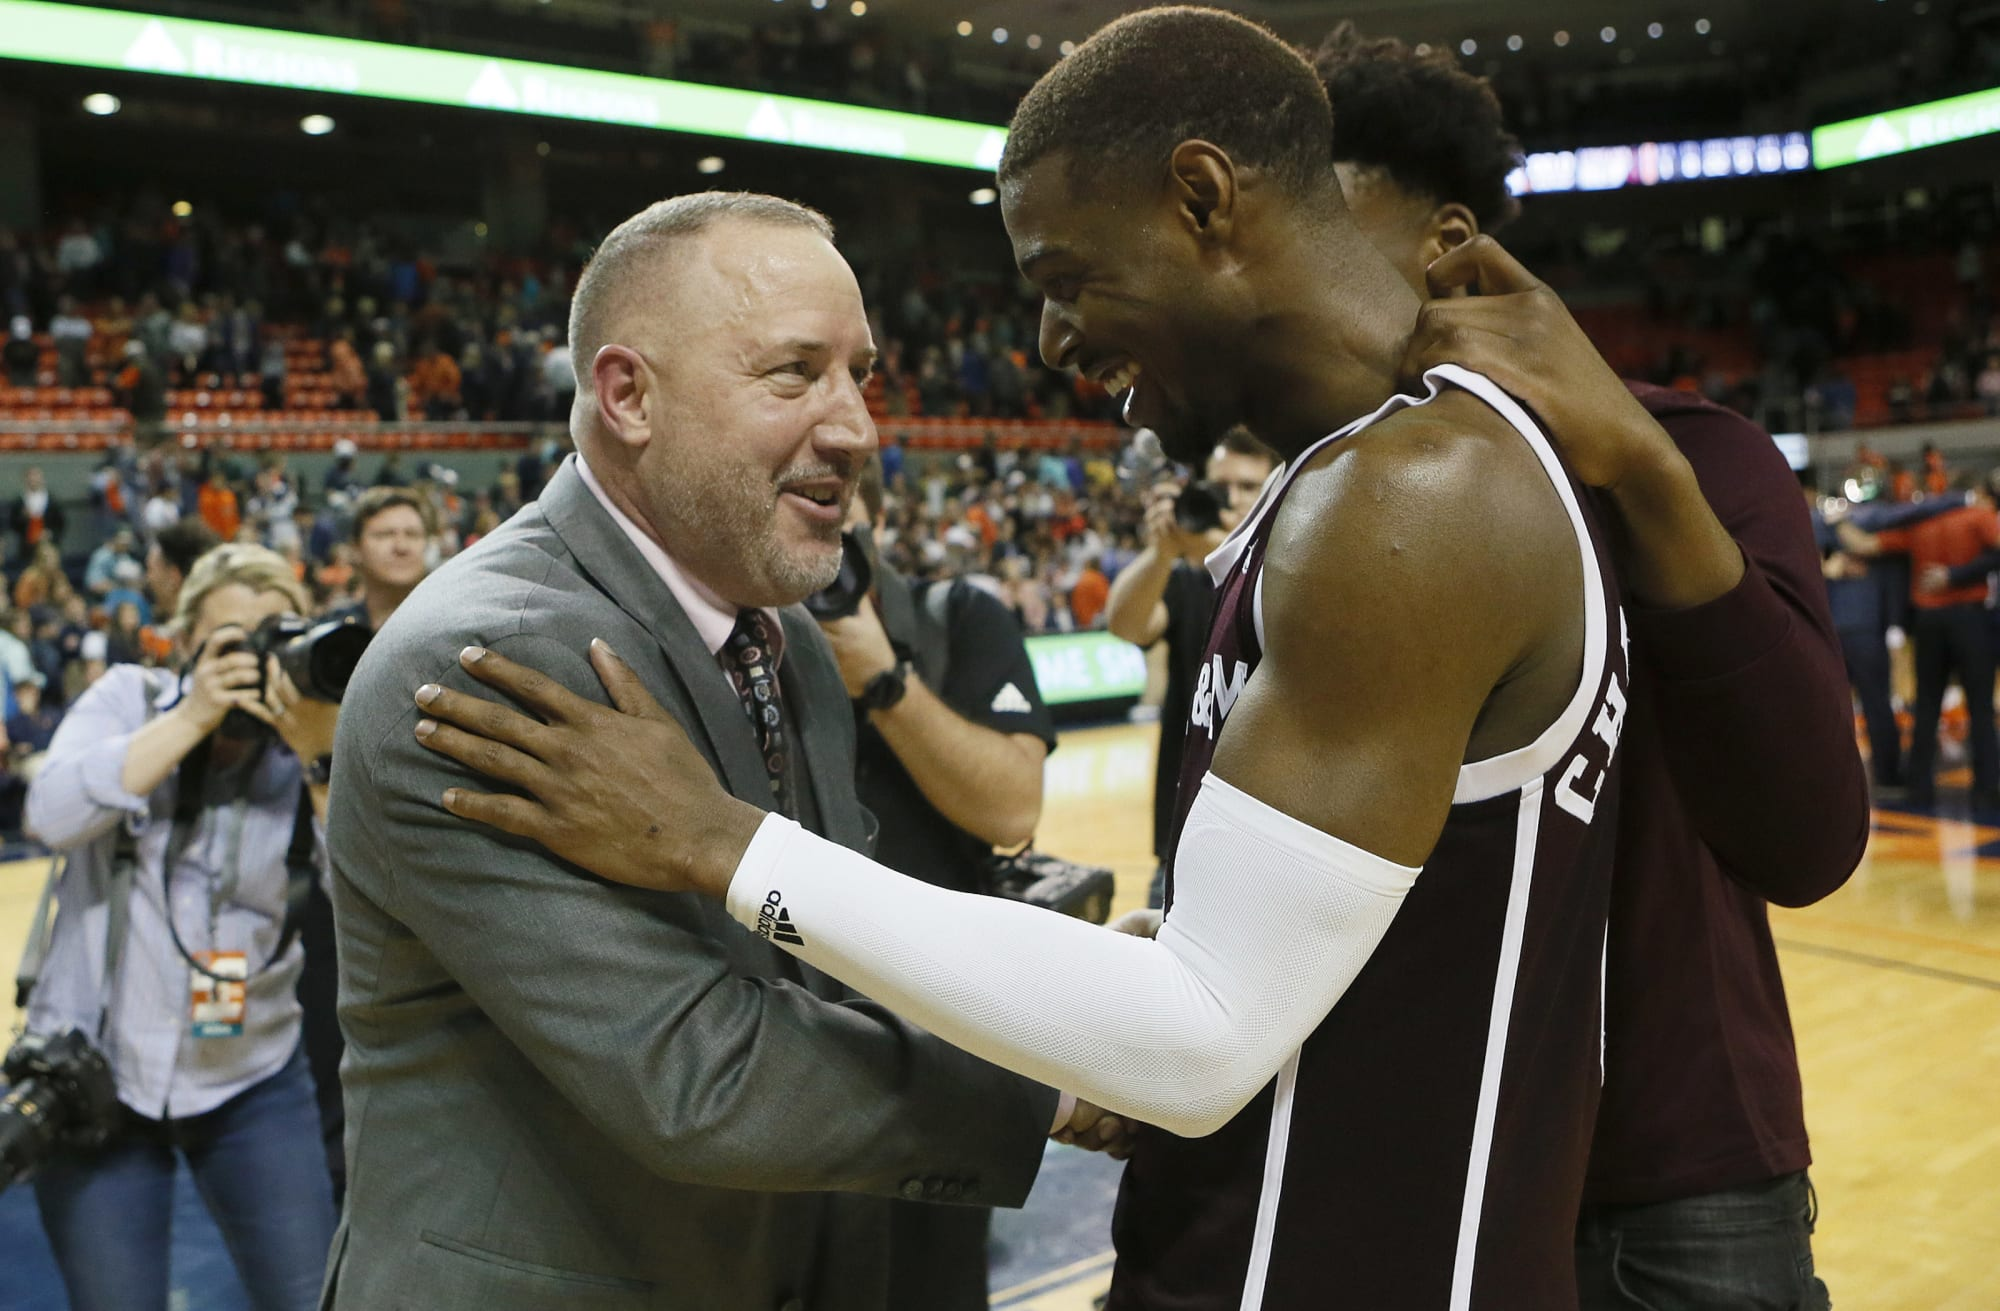 Texas A&M Basketball: Buzz Williams adds JUCO transfer to aid 2021 bounce-back